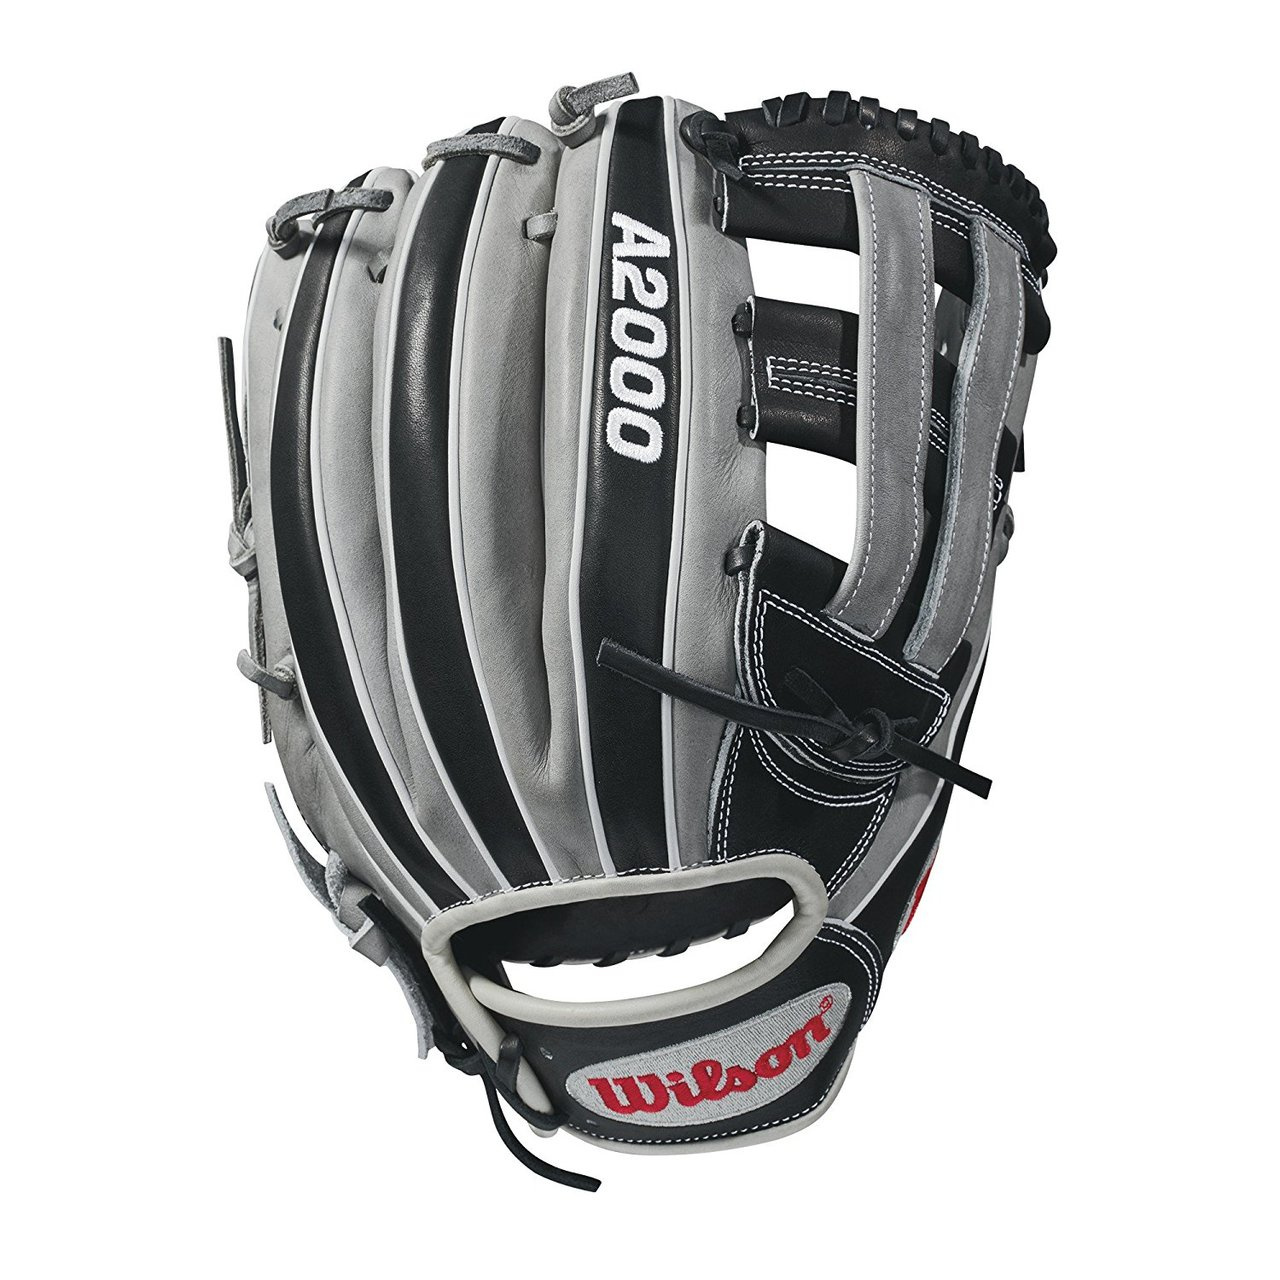 wilson-2018-a2000-gm-infield-baseball-gloves-right-hand-throw-12-25 A20RB18TDFTHR-RightHandThrow Wilson 887768614706 <div>Todd Frazier designed the A2000 TDFTHR GM his first game model